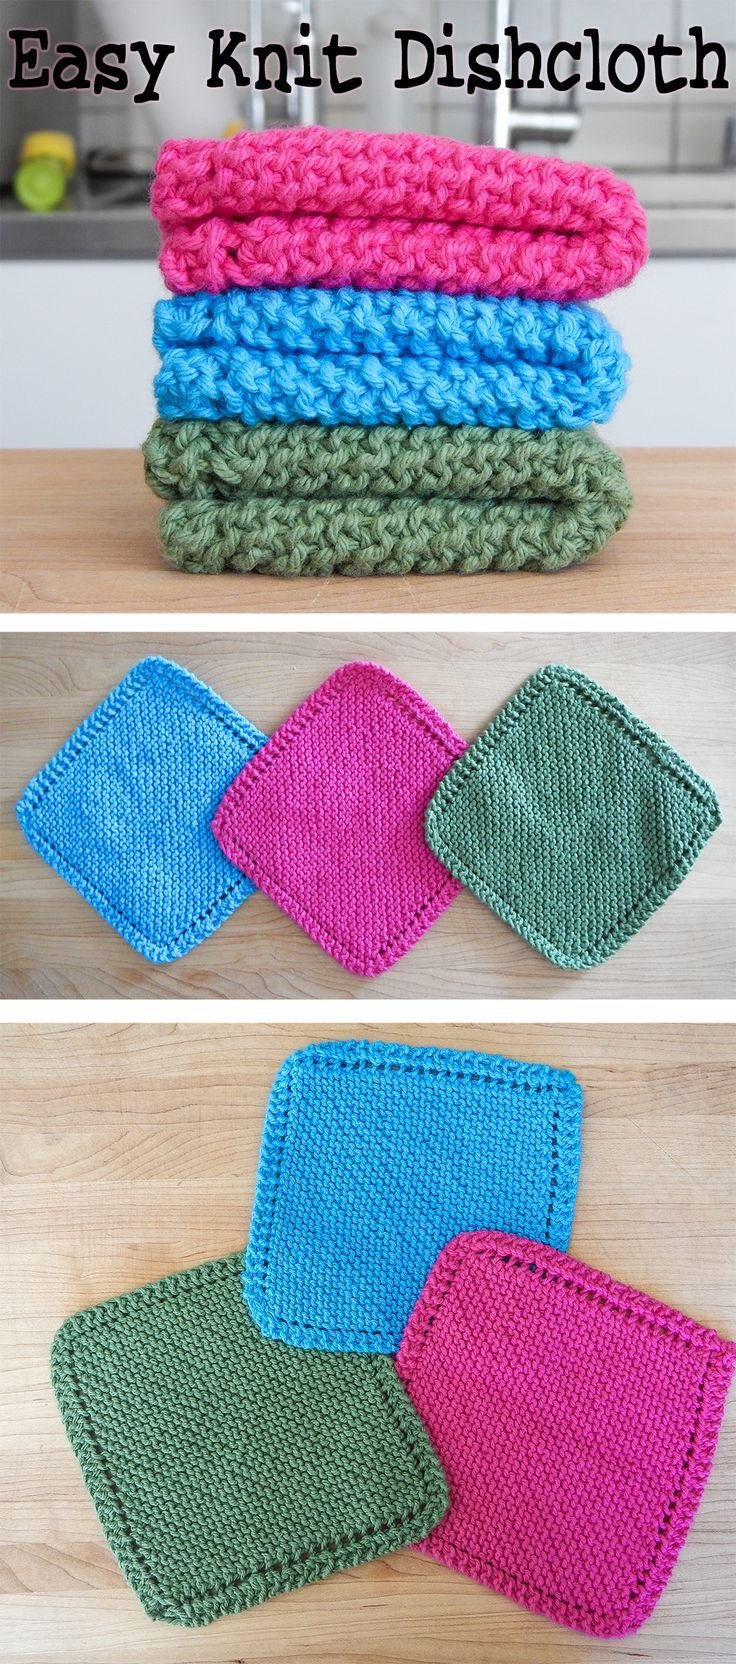 Great for beginners. | Knitting Needles